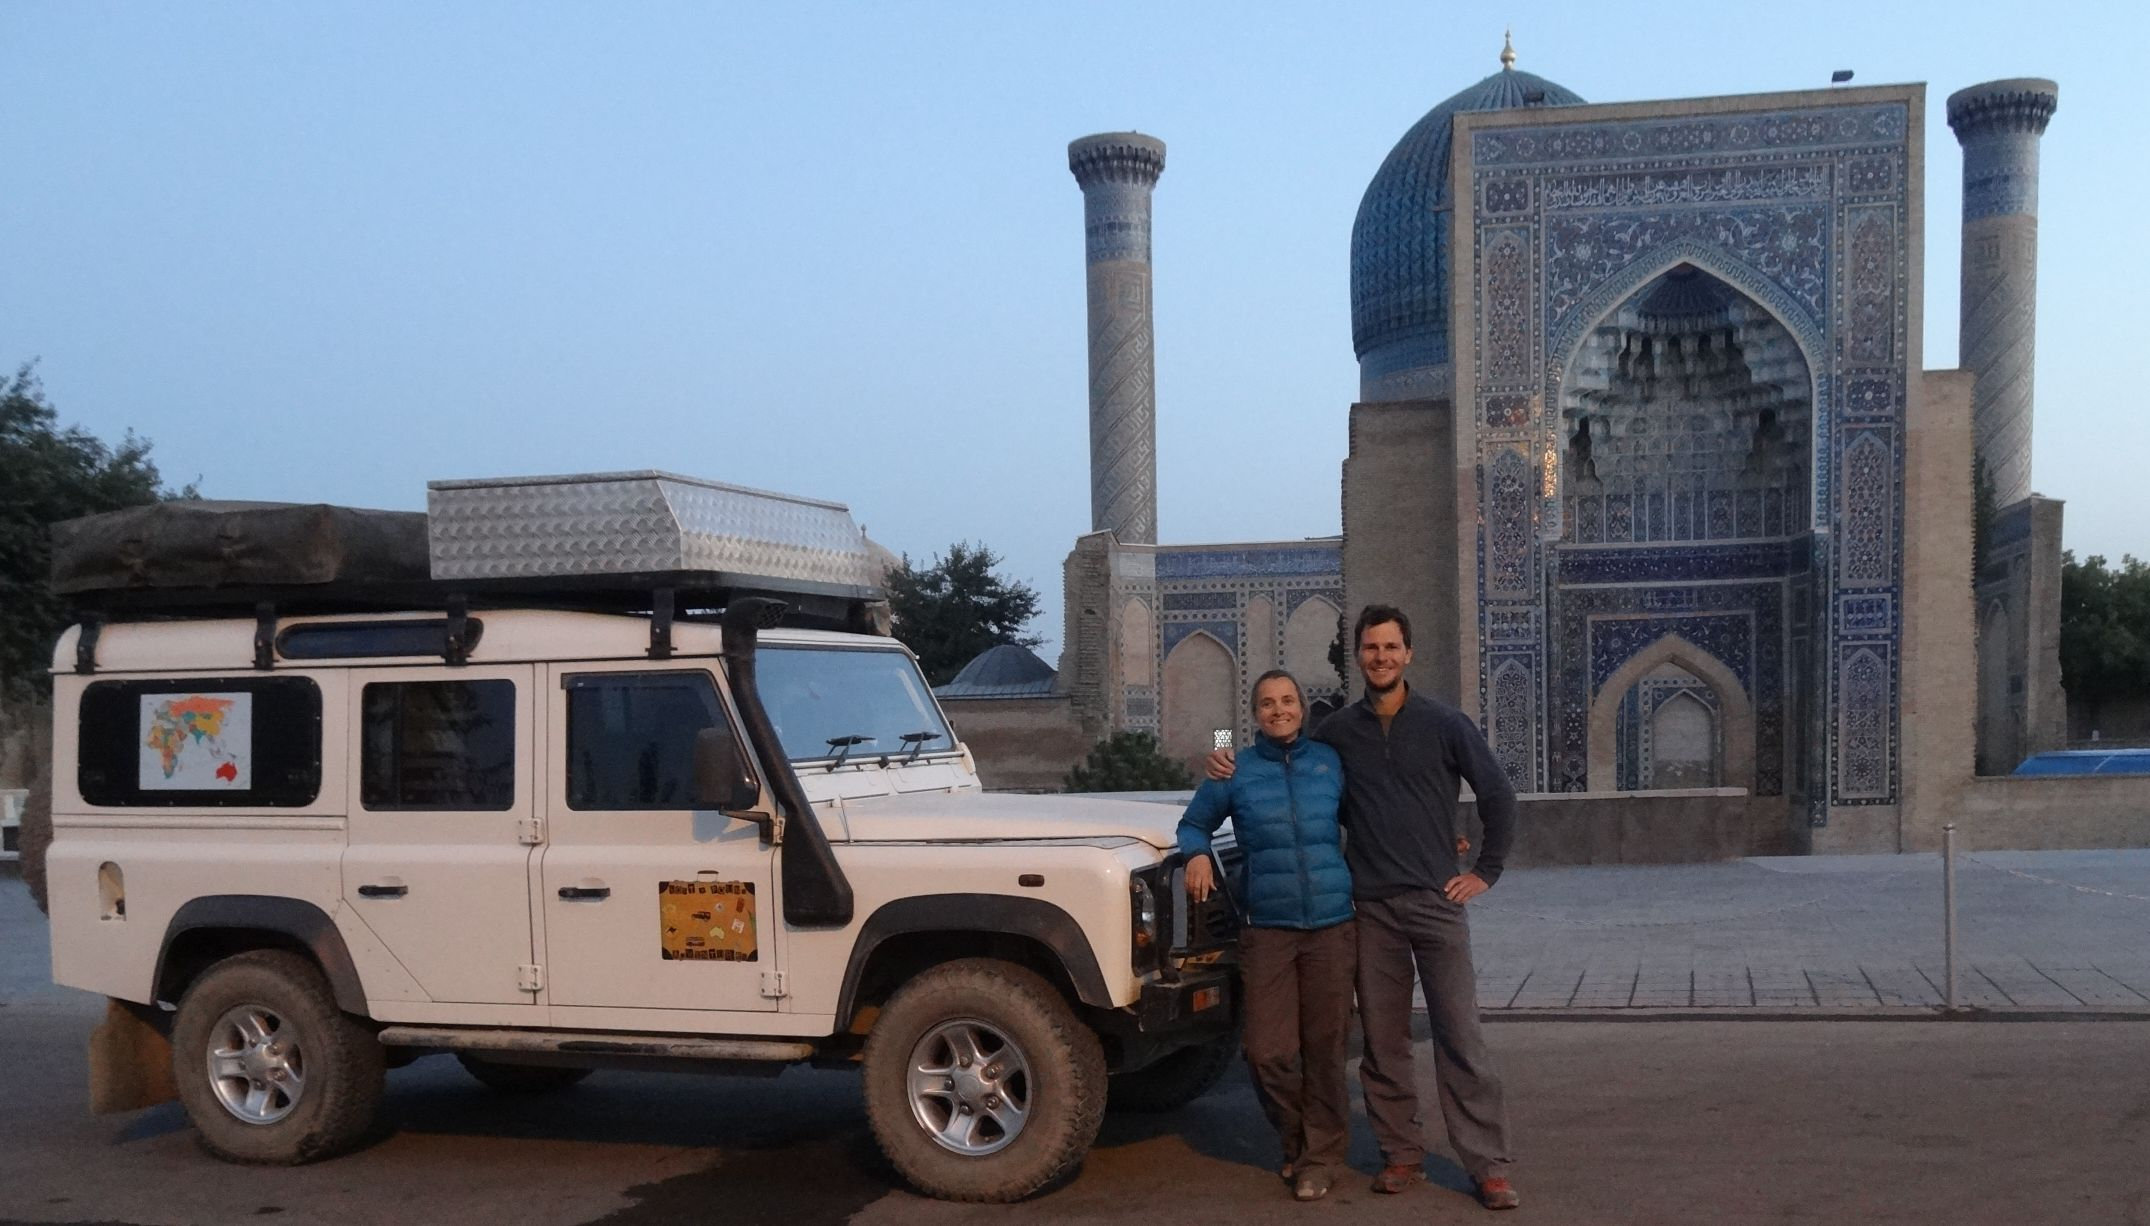 our favourite mausoleum in Samarkand: Gur-e-Amir where Timur (Tamerlane) is burried